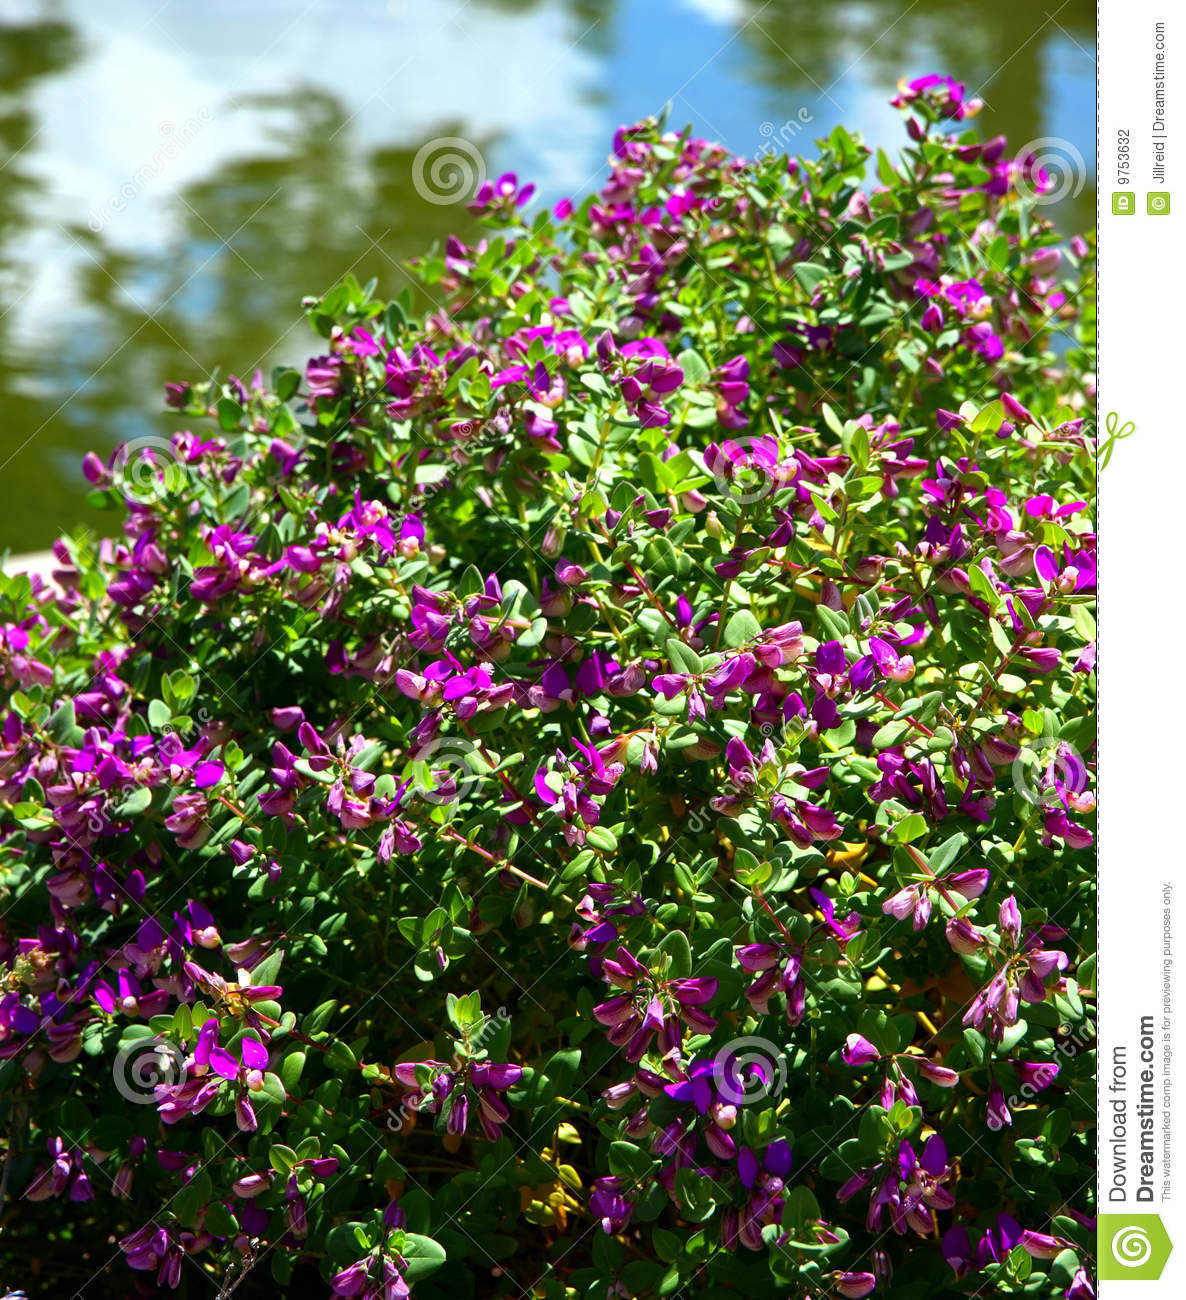 Winterharde Struiken Met Bloemen Purple Flowering Bush Stock Photography Image 9753632